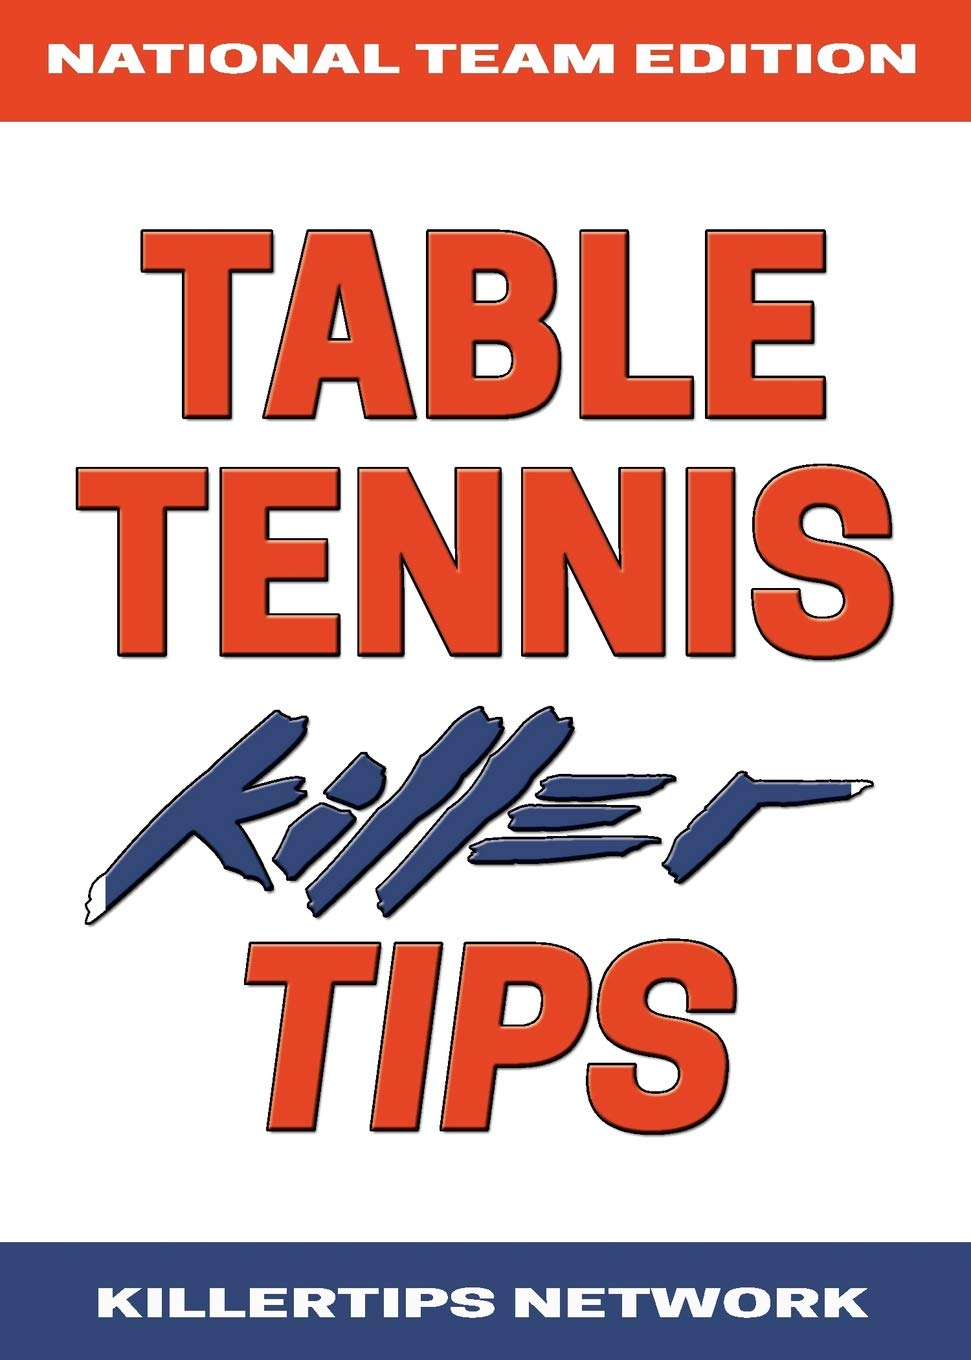 TABLE TENNIS KILLER TIPS: NATIONAL TEAM EDITION por KILLERTIPS NETWORK